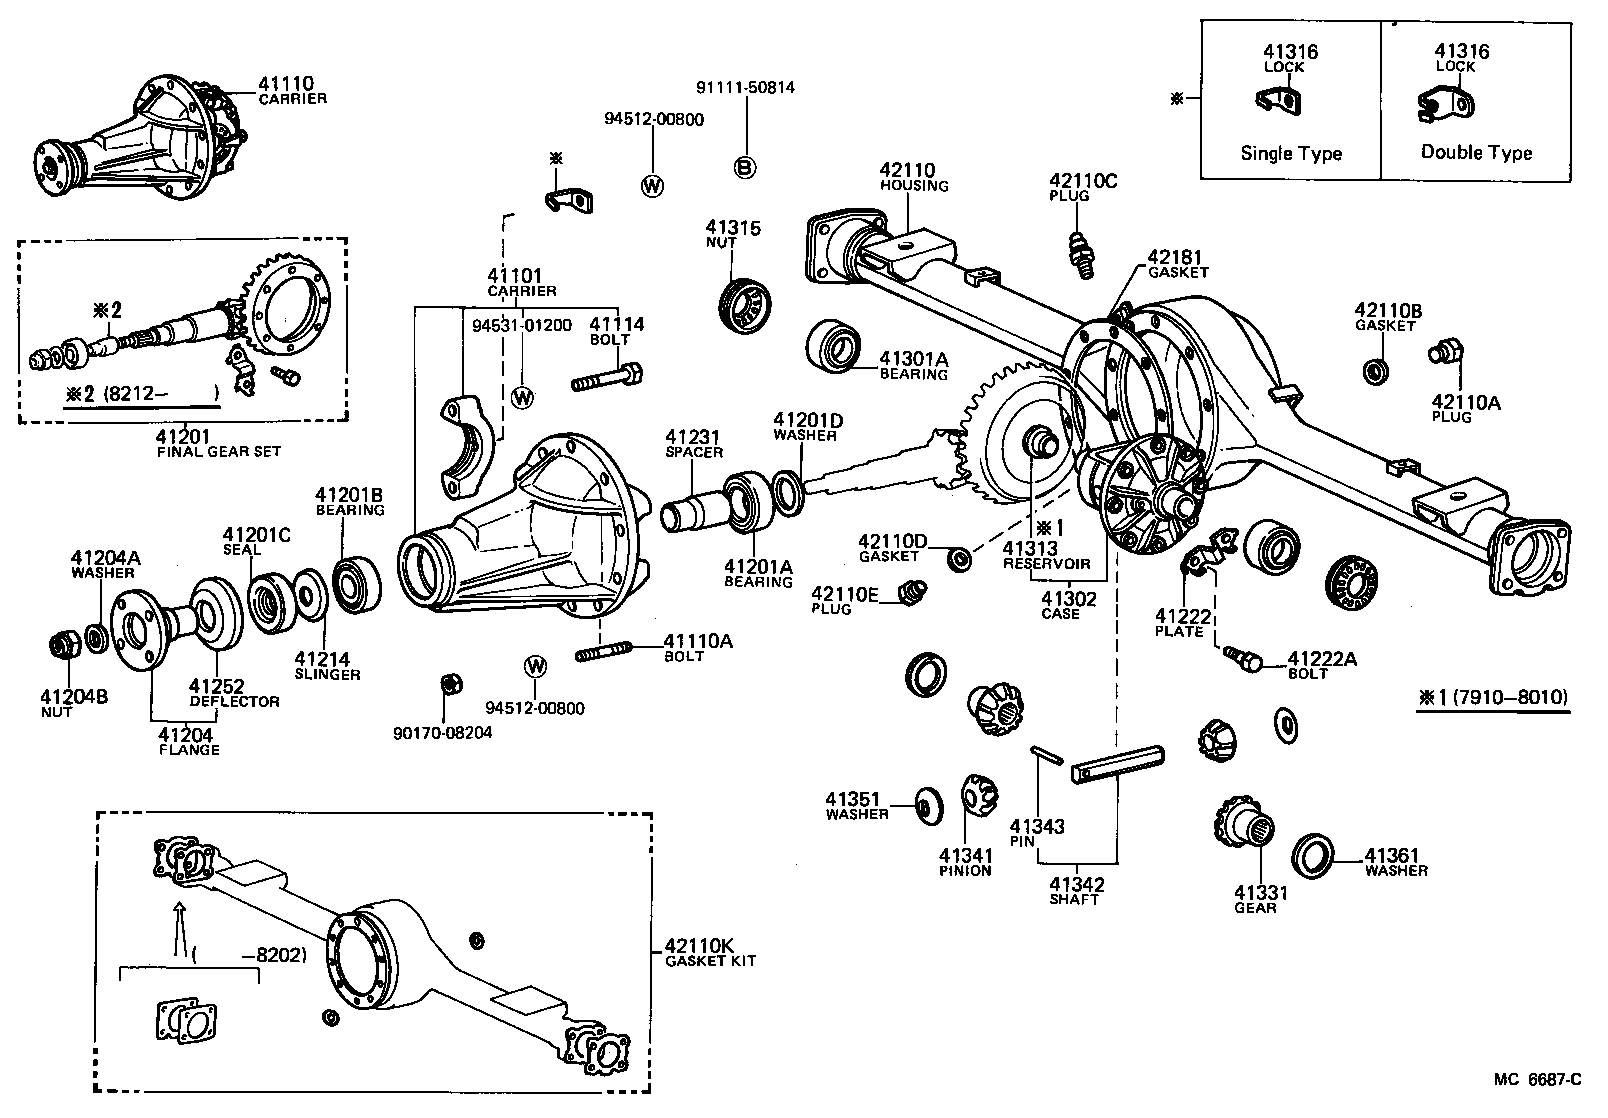 Toyota Diagrams : Toyota Land Cruiser Transfer Case